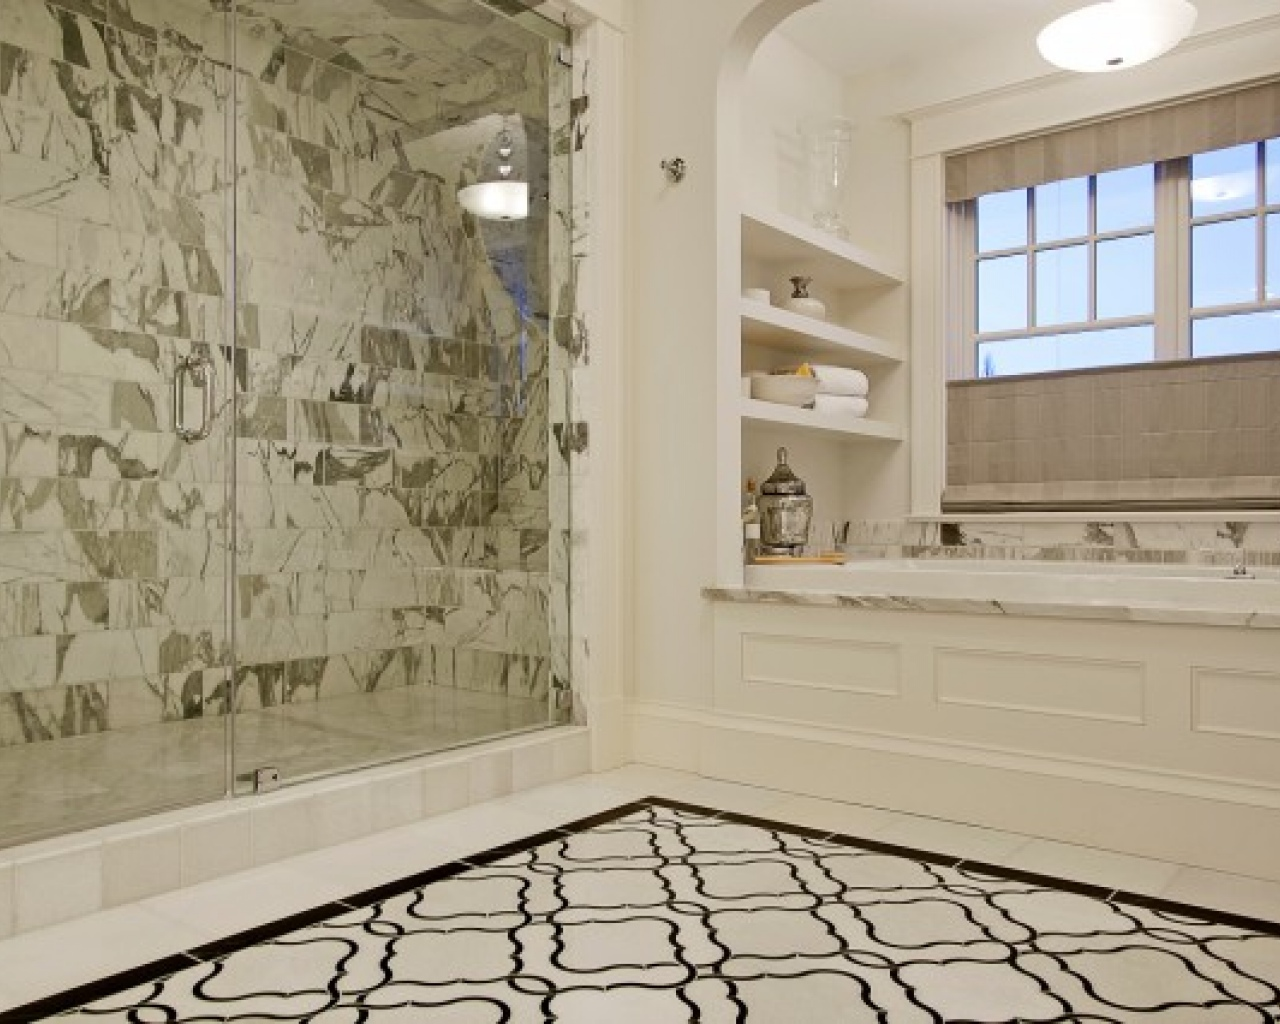 source-paul-moon-design-chic-marble-bathroom-design-white-black-bathroom-ideas-bathroom-bathroom.com-marble-marble-bath-marble-bathroom-marble-bathroom-ideas-marble-bathroom-ideass-marble-bathroom